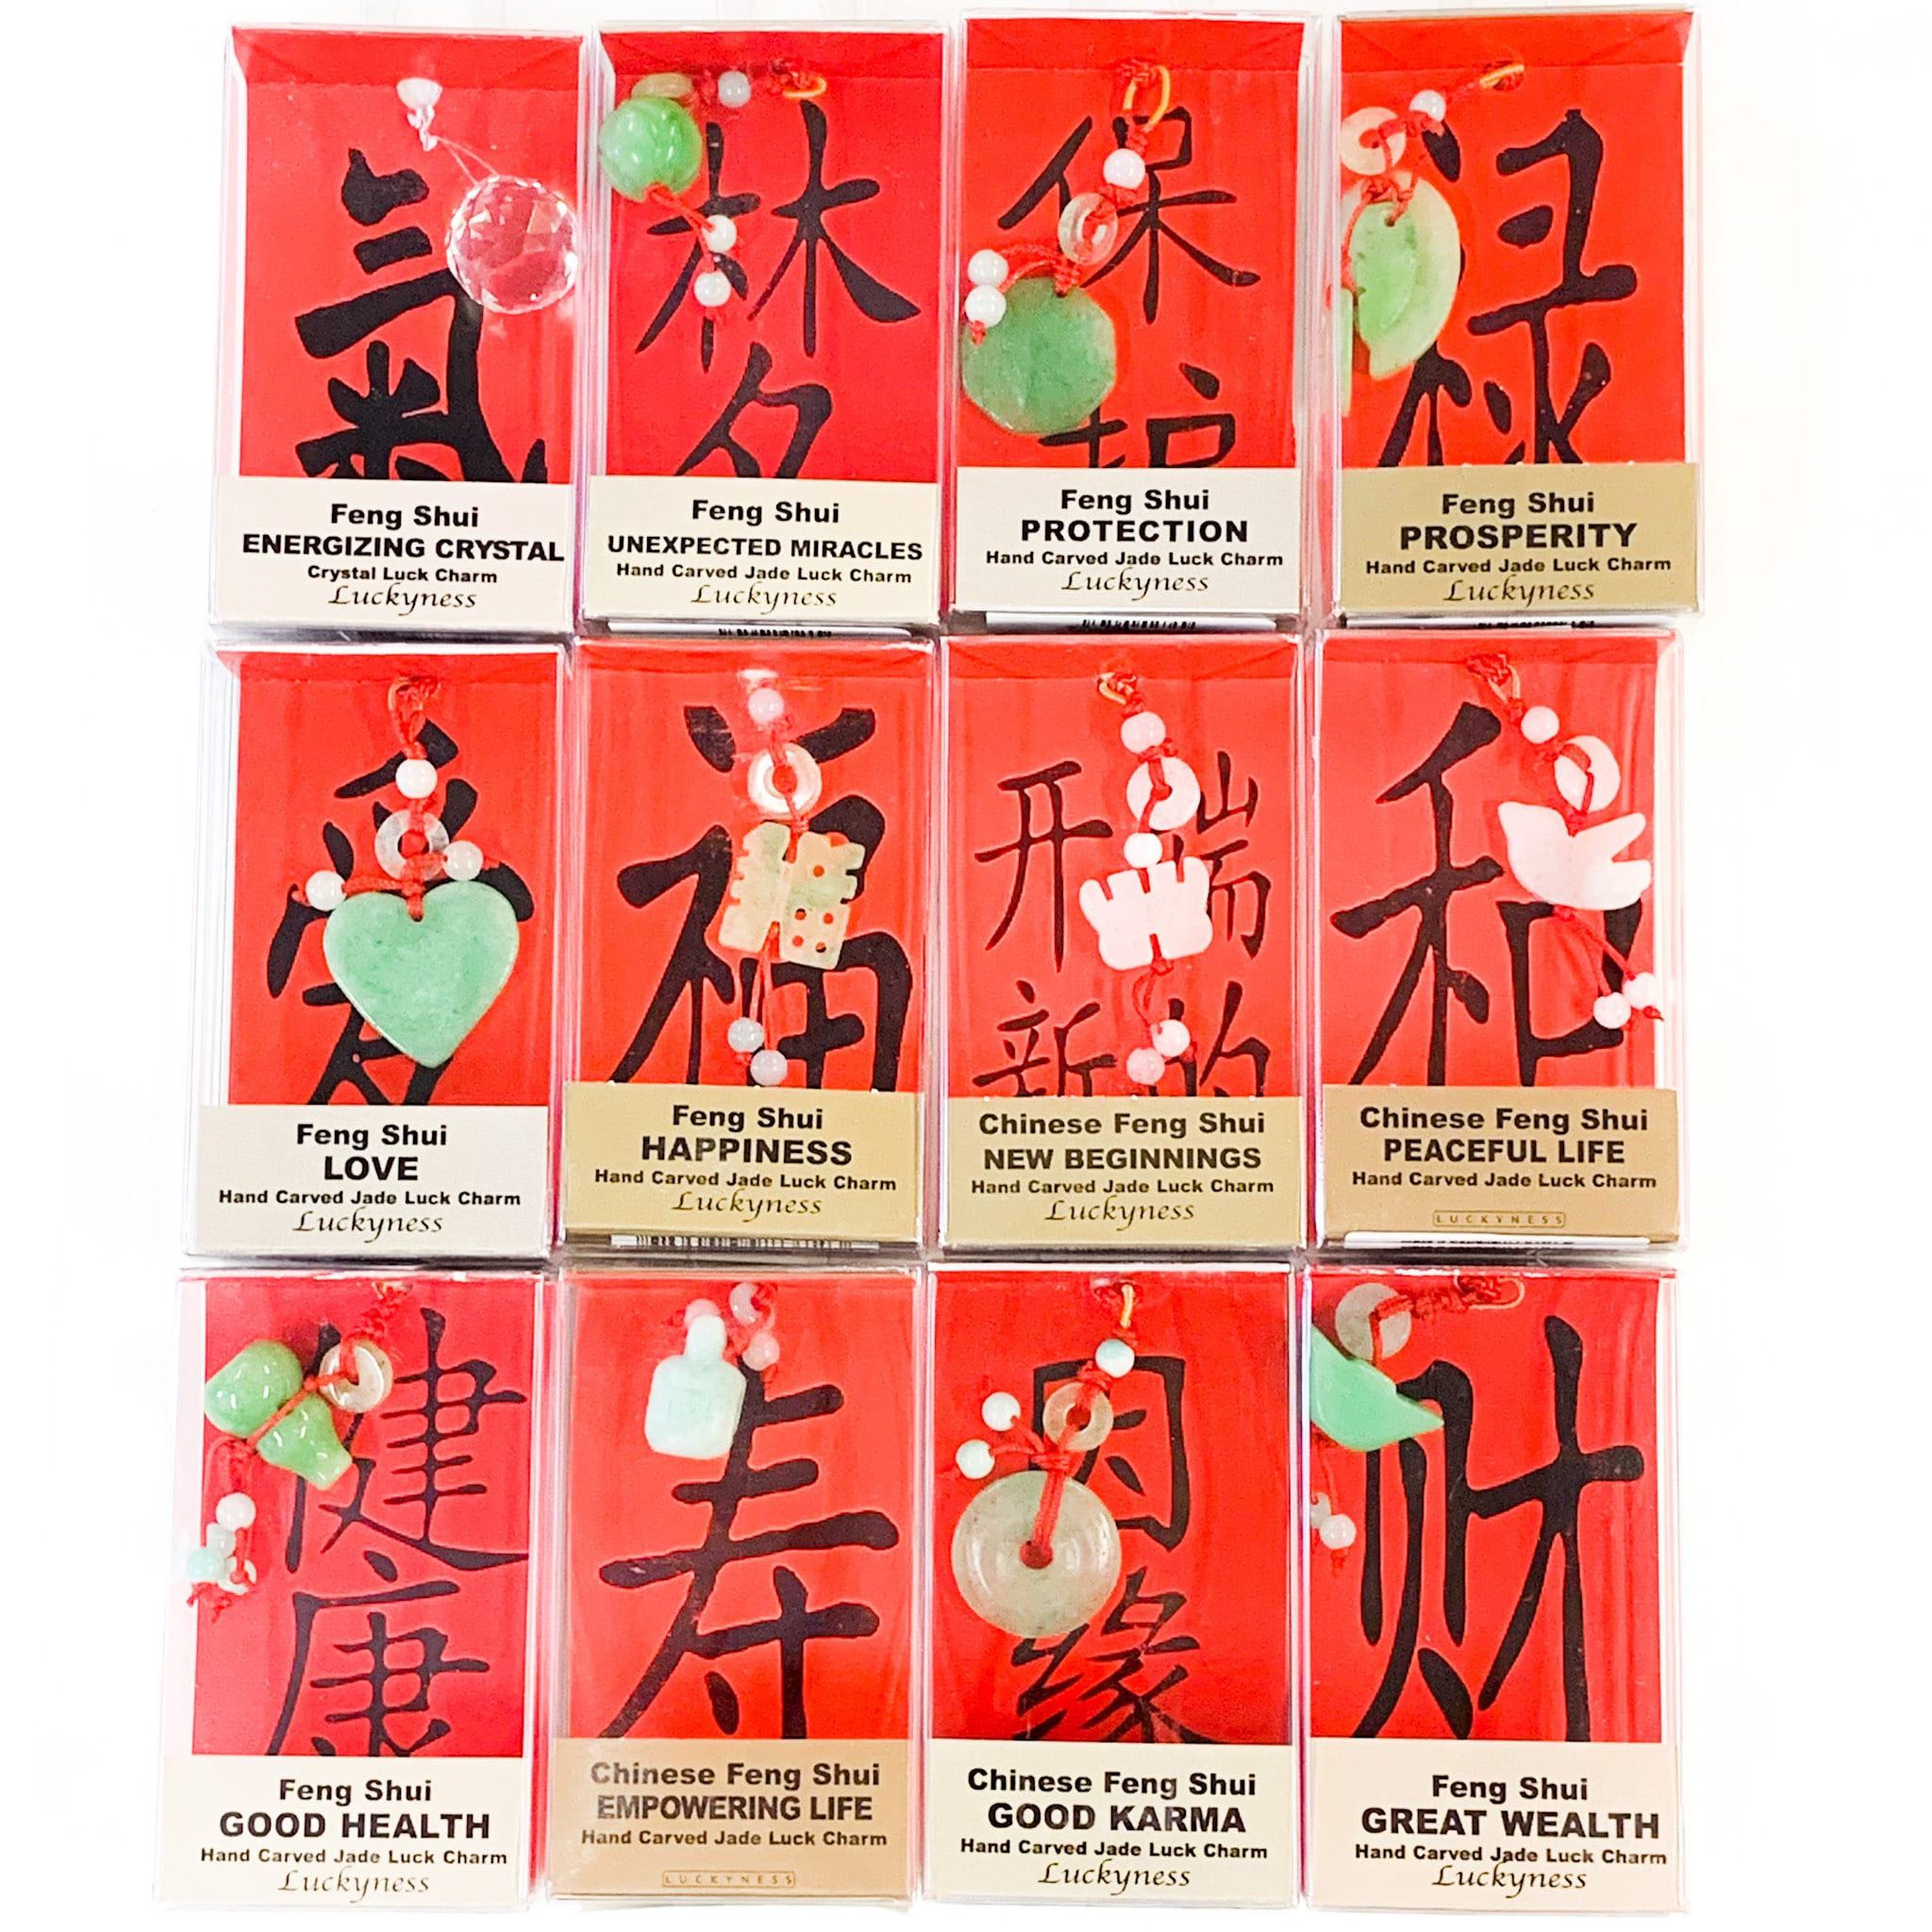 Feng Shui Charm To Energize And Bring Good Fortune